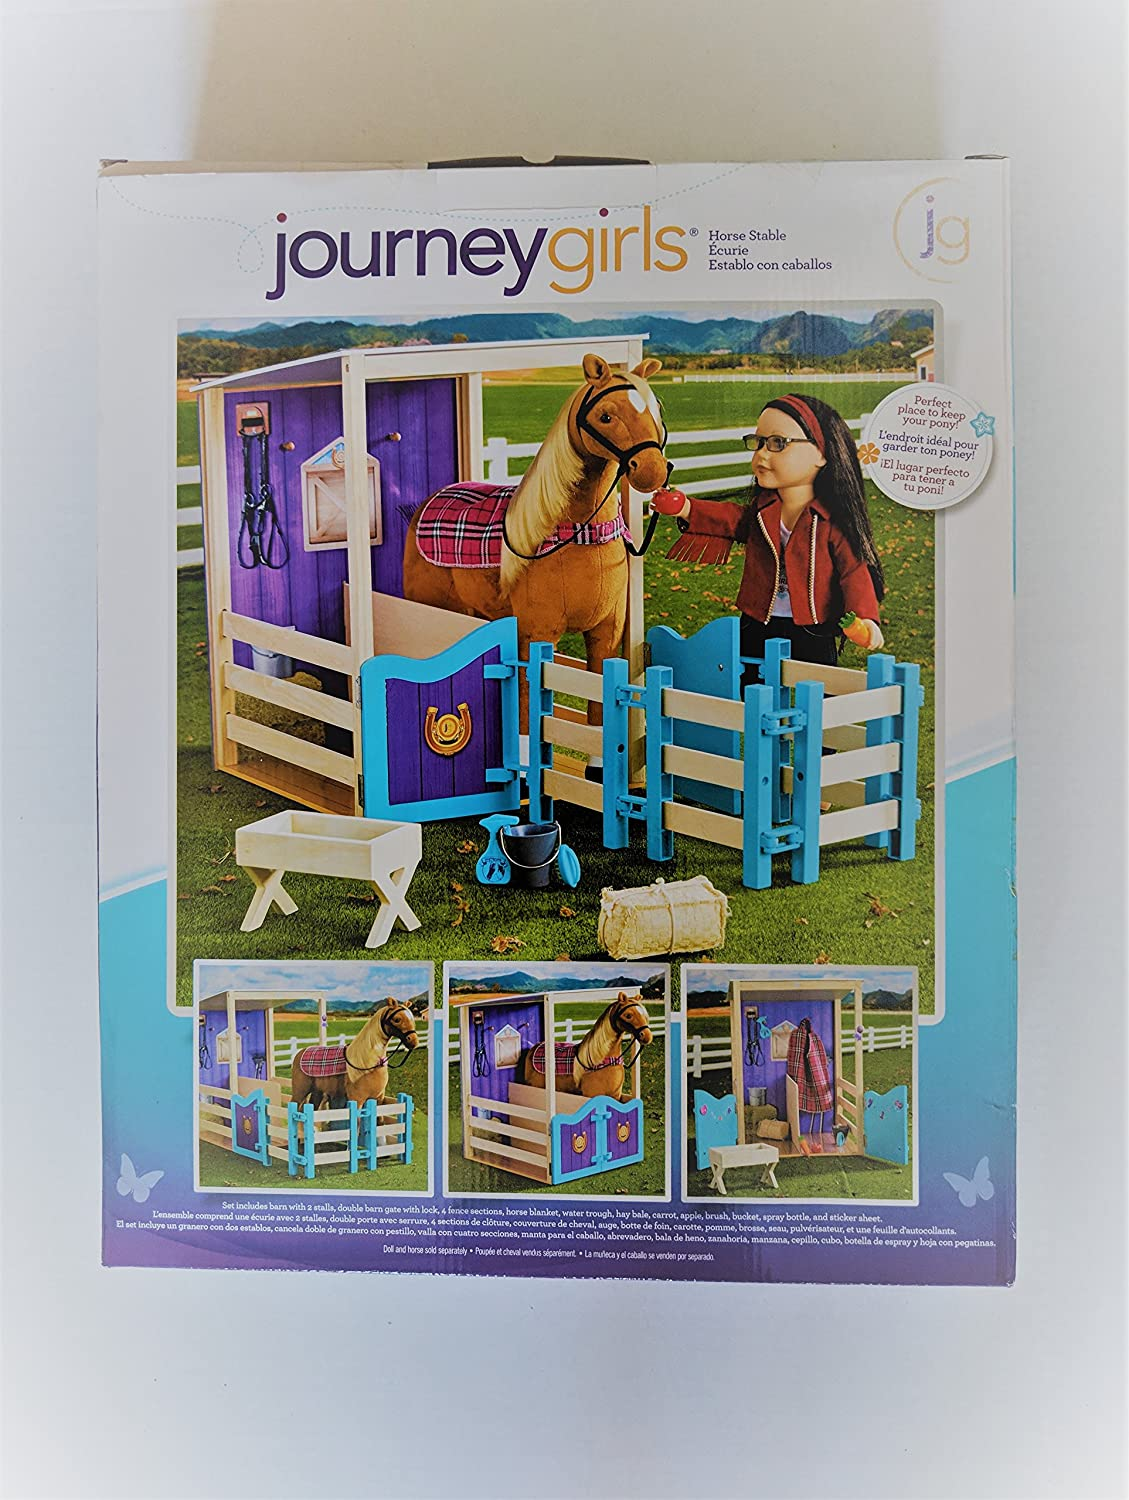 Amazon.com: Journey Girls Horse Stable with 2 Stalls, Double Barn Gate with Lock, (Horse NOT Included) 4 Fence Sctions, Horse Blanket, and Water Trough: ...